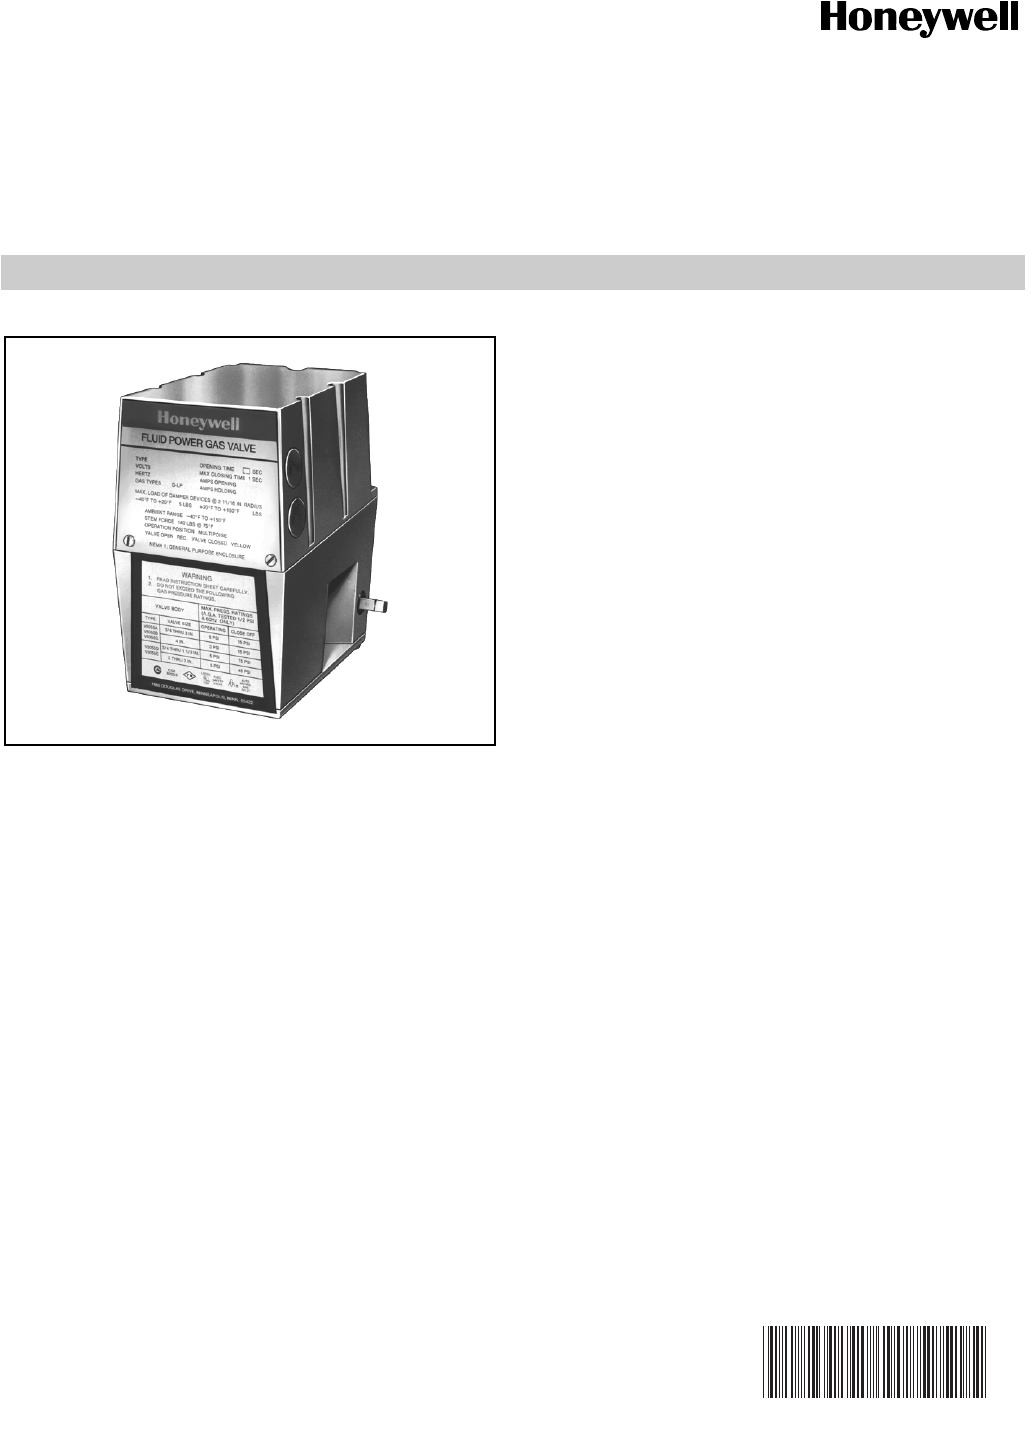 Honeywell v4055 users manual 60 230912 v4055abde on off fluid honeywell v4055 users manual 60 230912 v4055abde on off fluid power gas valve actuator sciox Images